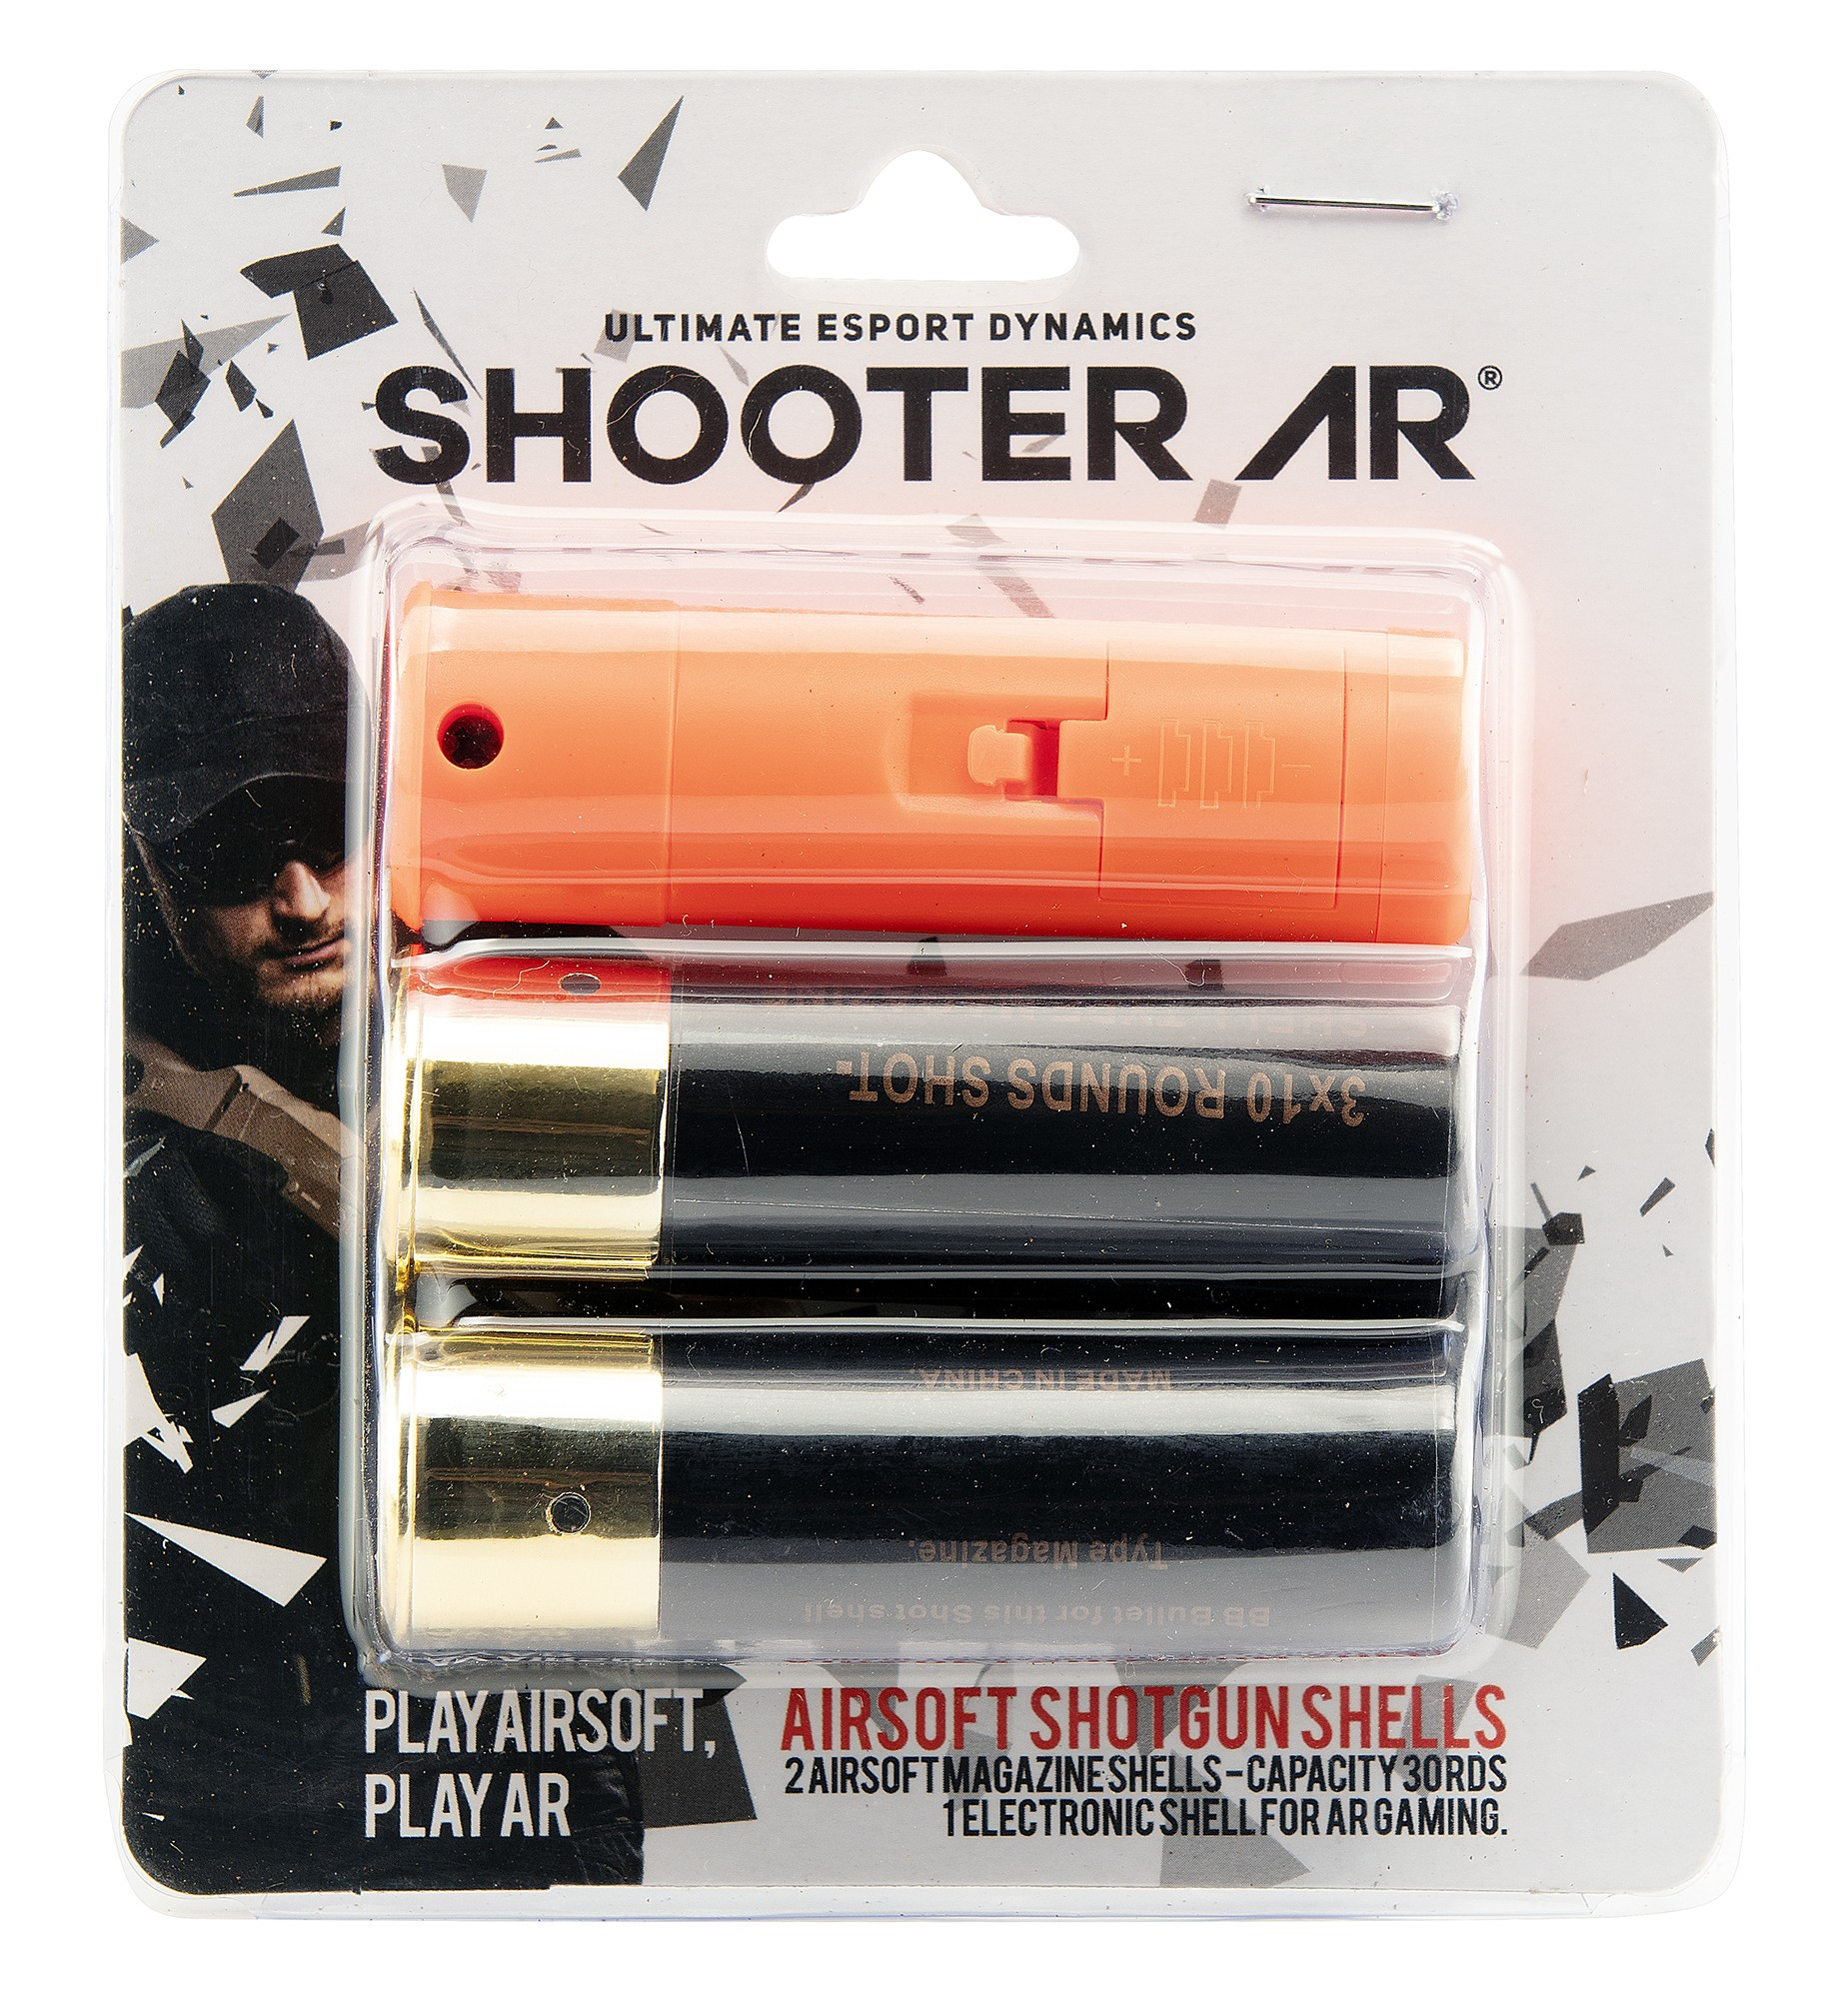 USA68356 Pack of 2 airsoft shotgun shells and 1 bluetooth shell SHOOTER AR - USA68356